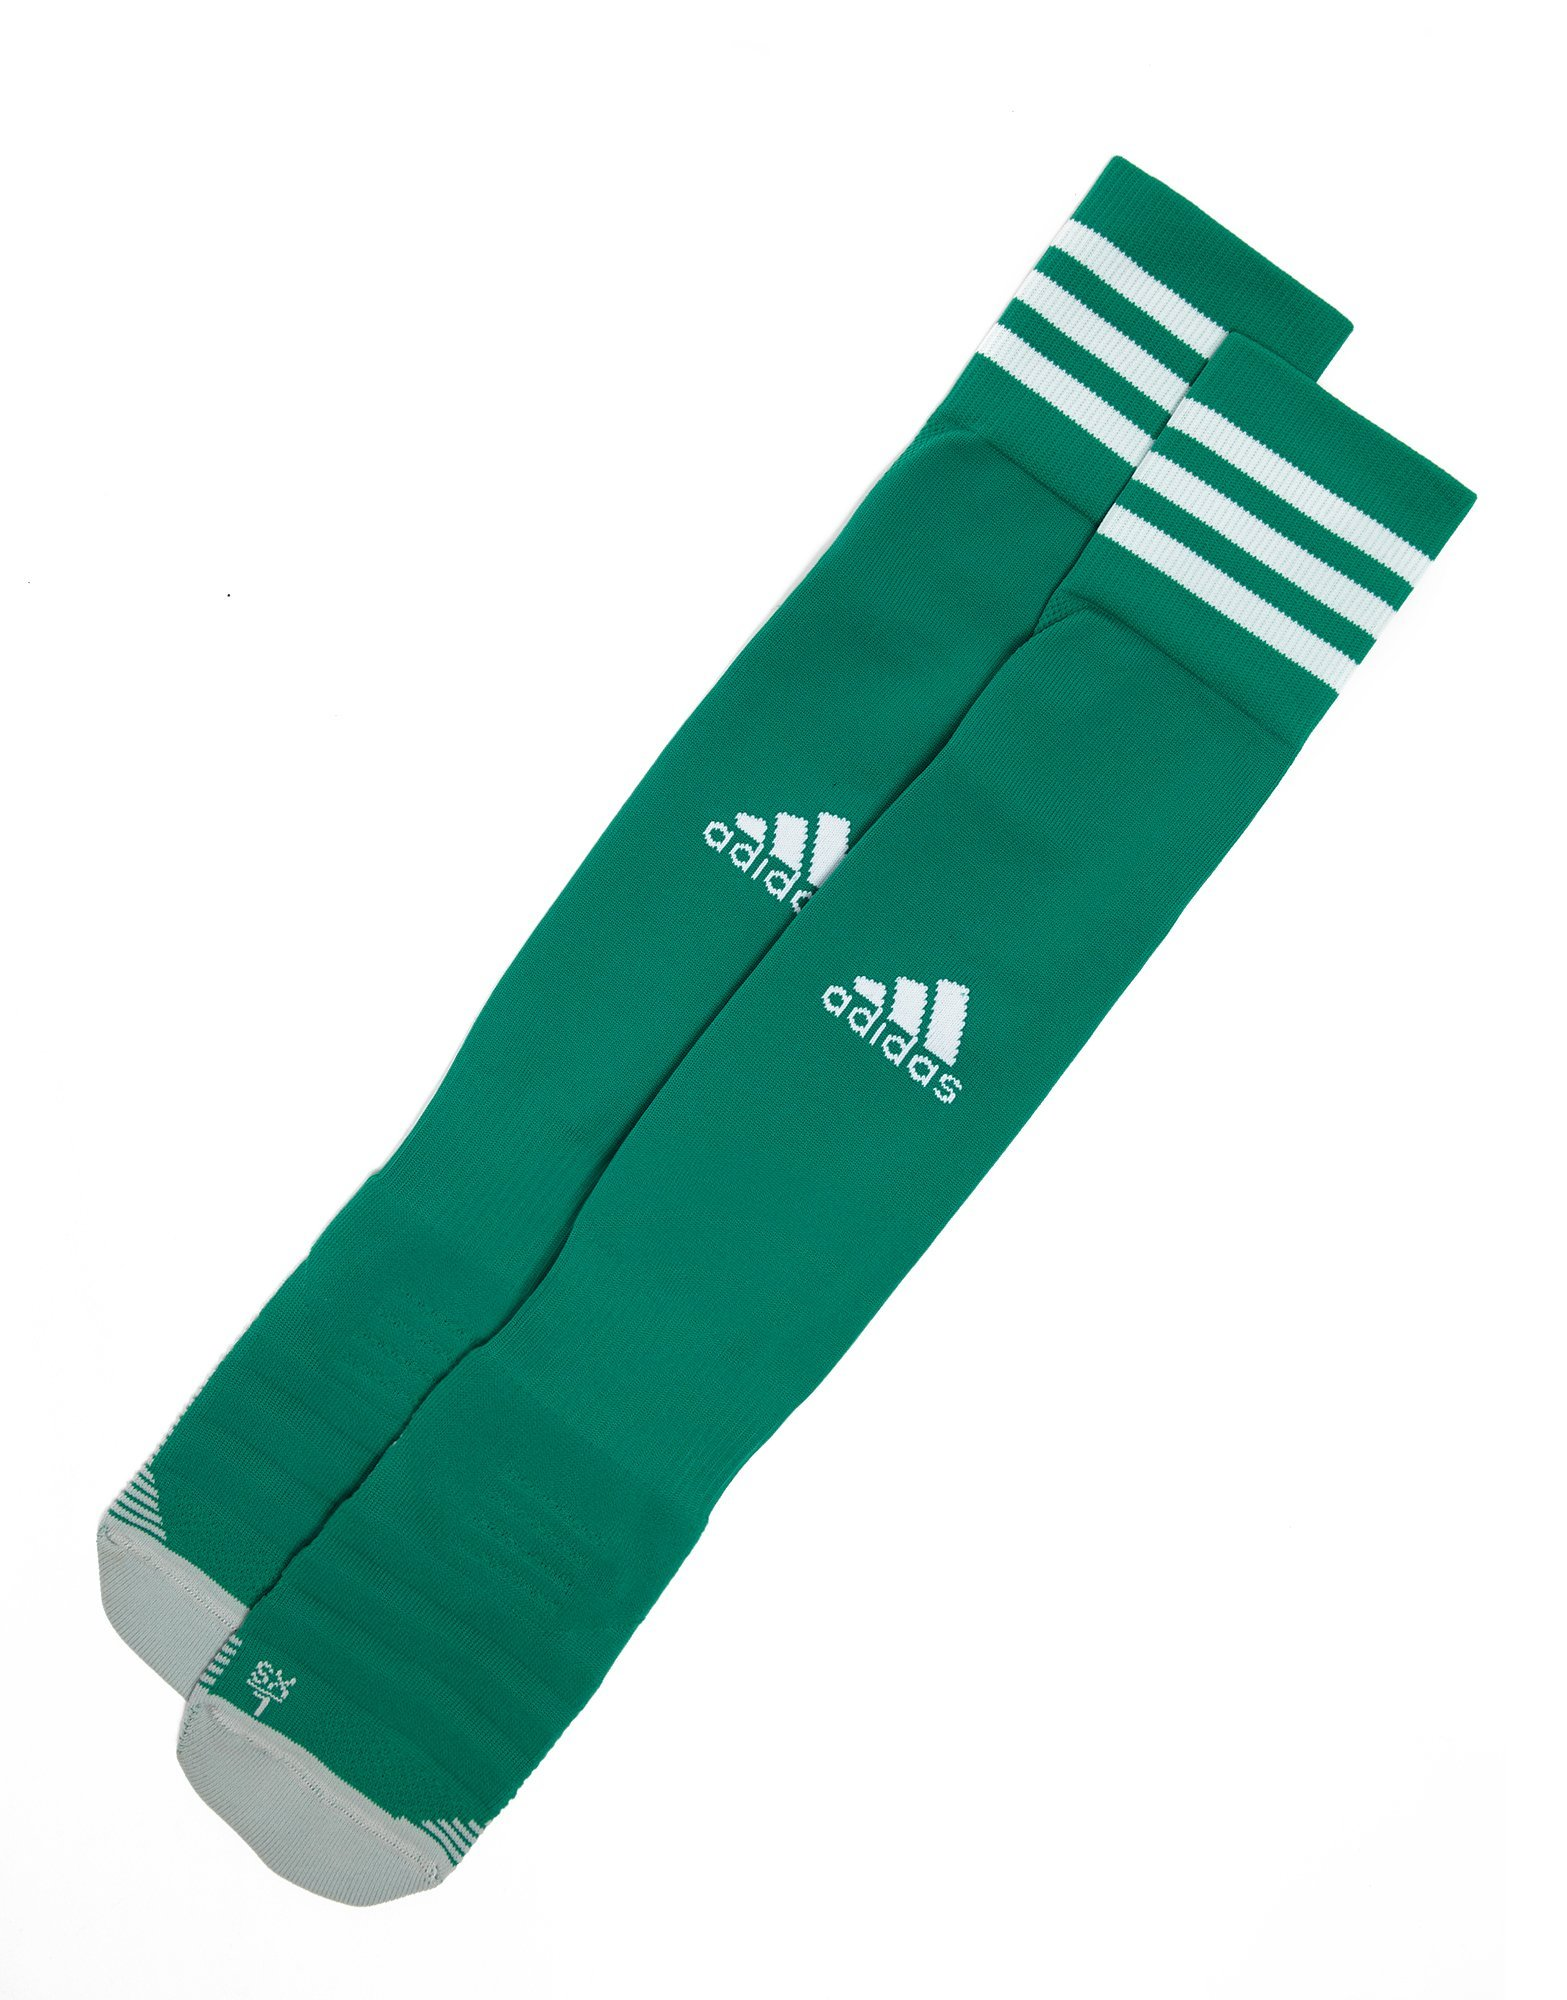 adidas Wales 2018/19 Away Socks